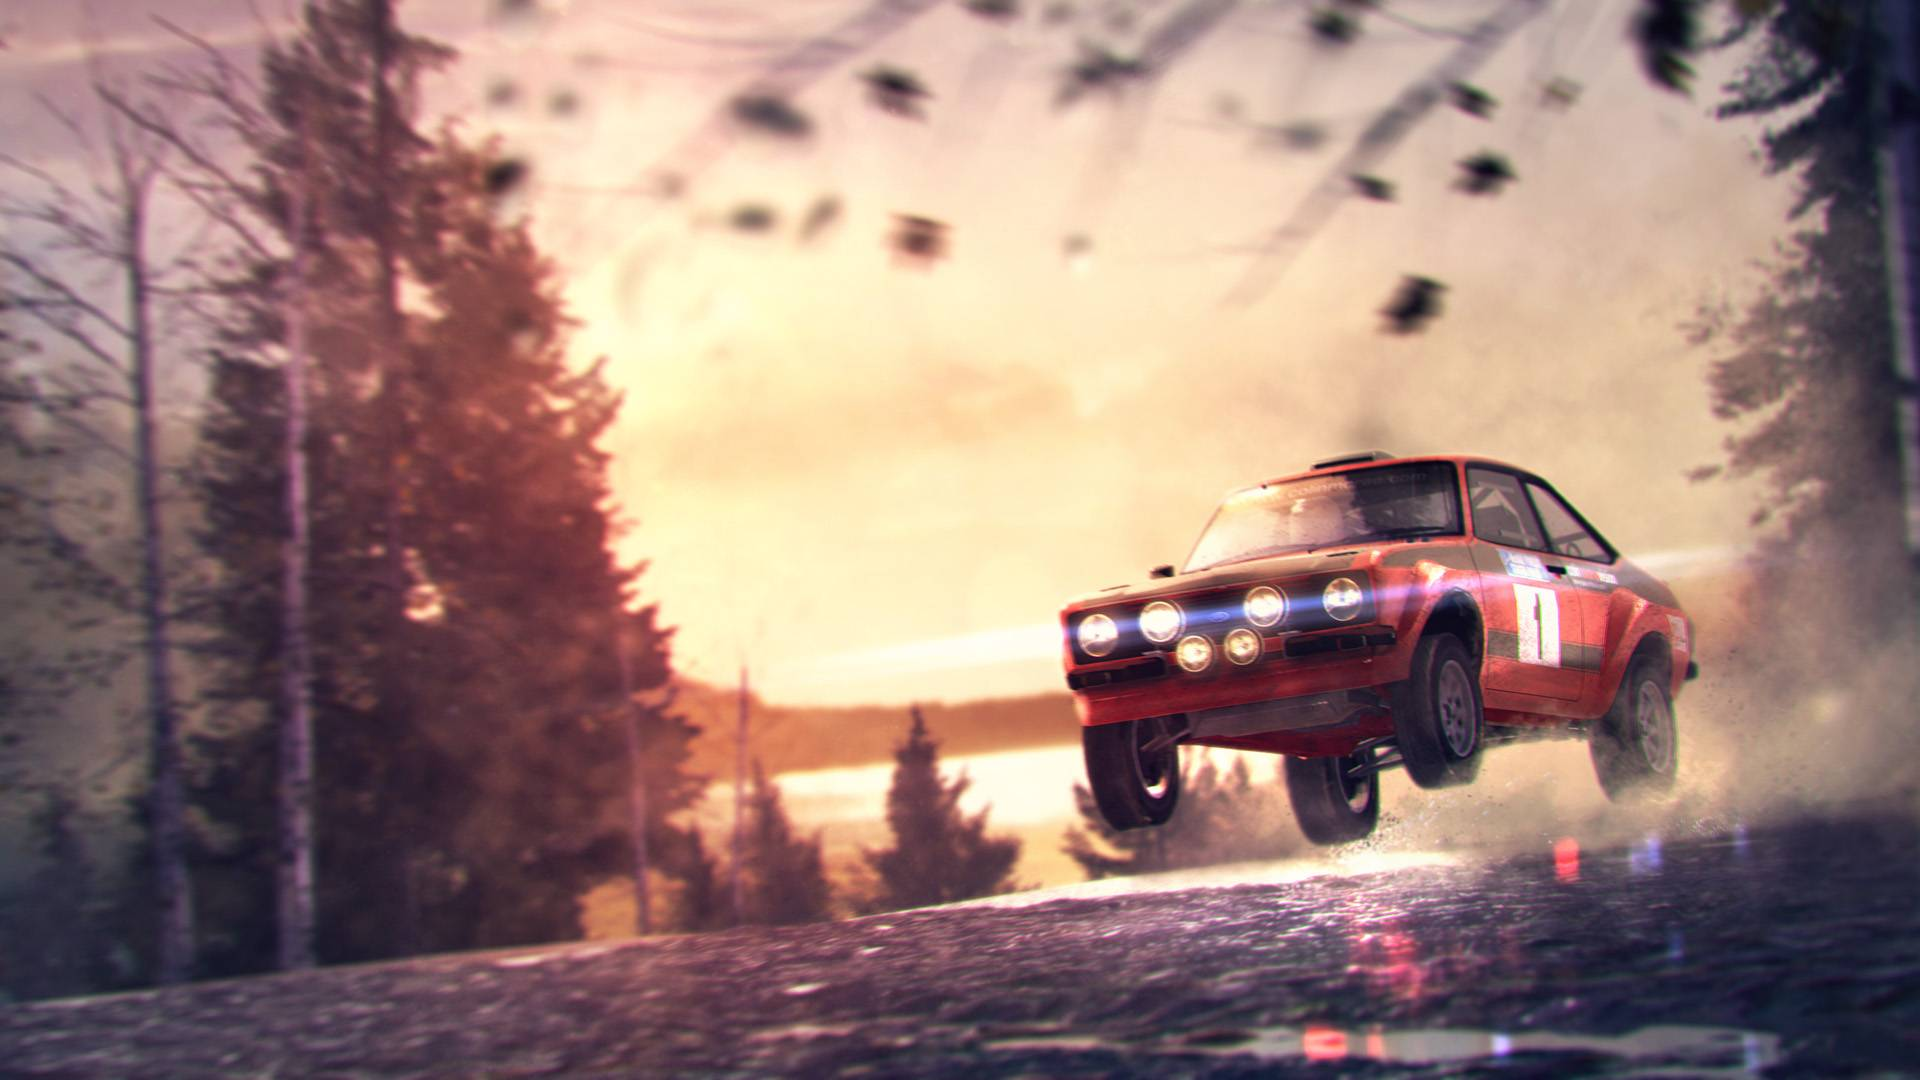 dirt 3 wallpapers hd 1080p pc Wallpapers hd com